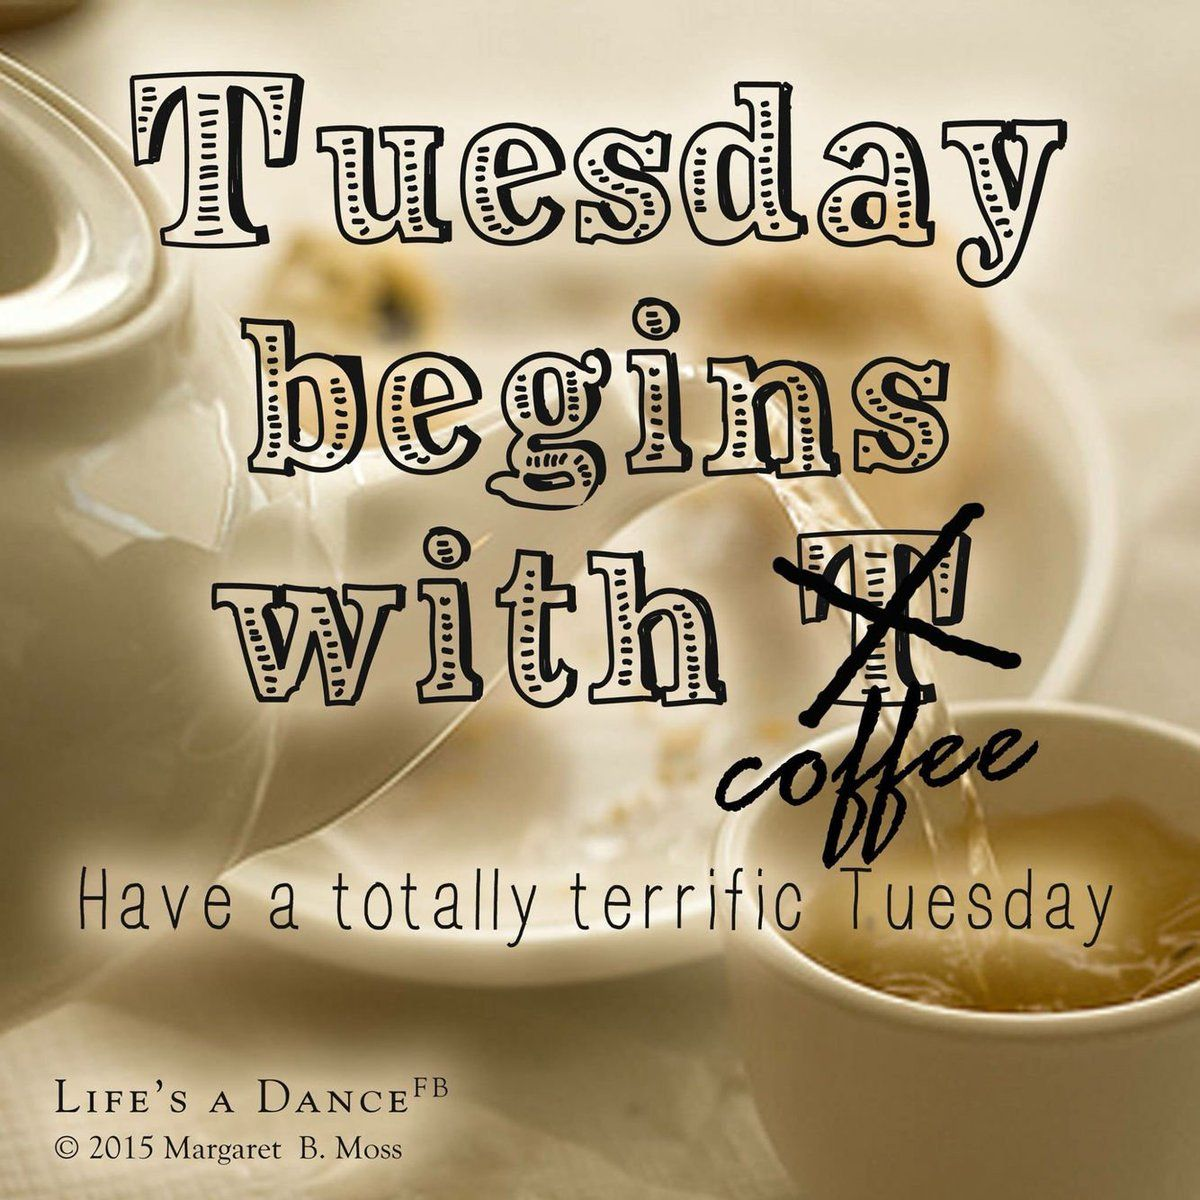 Account Suspended Coffee quotes, Tuesday quotes, Tuesday